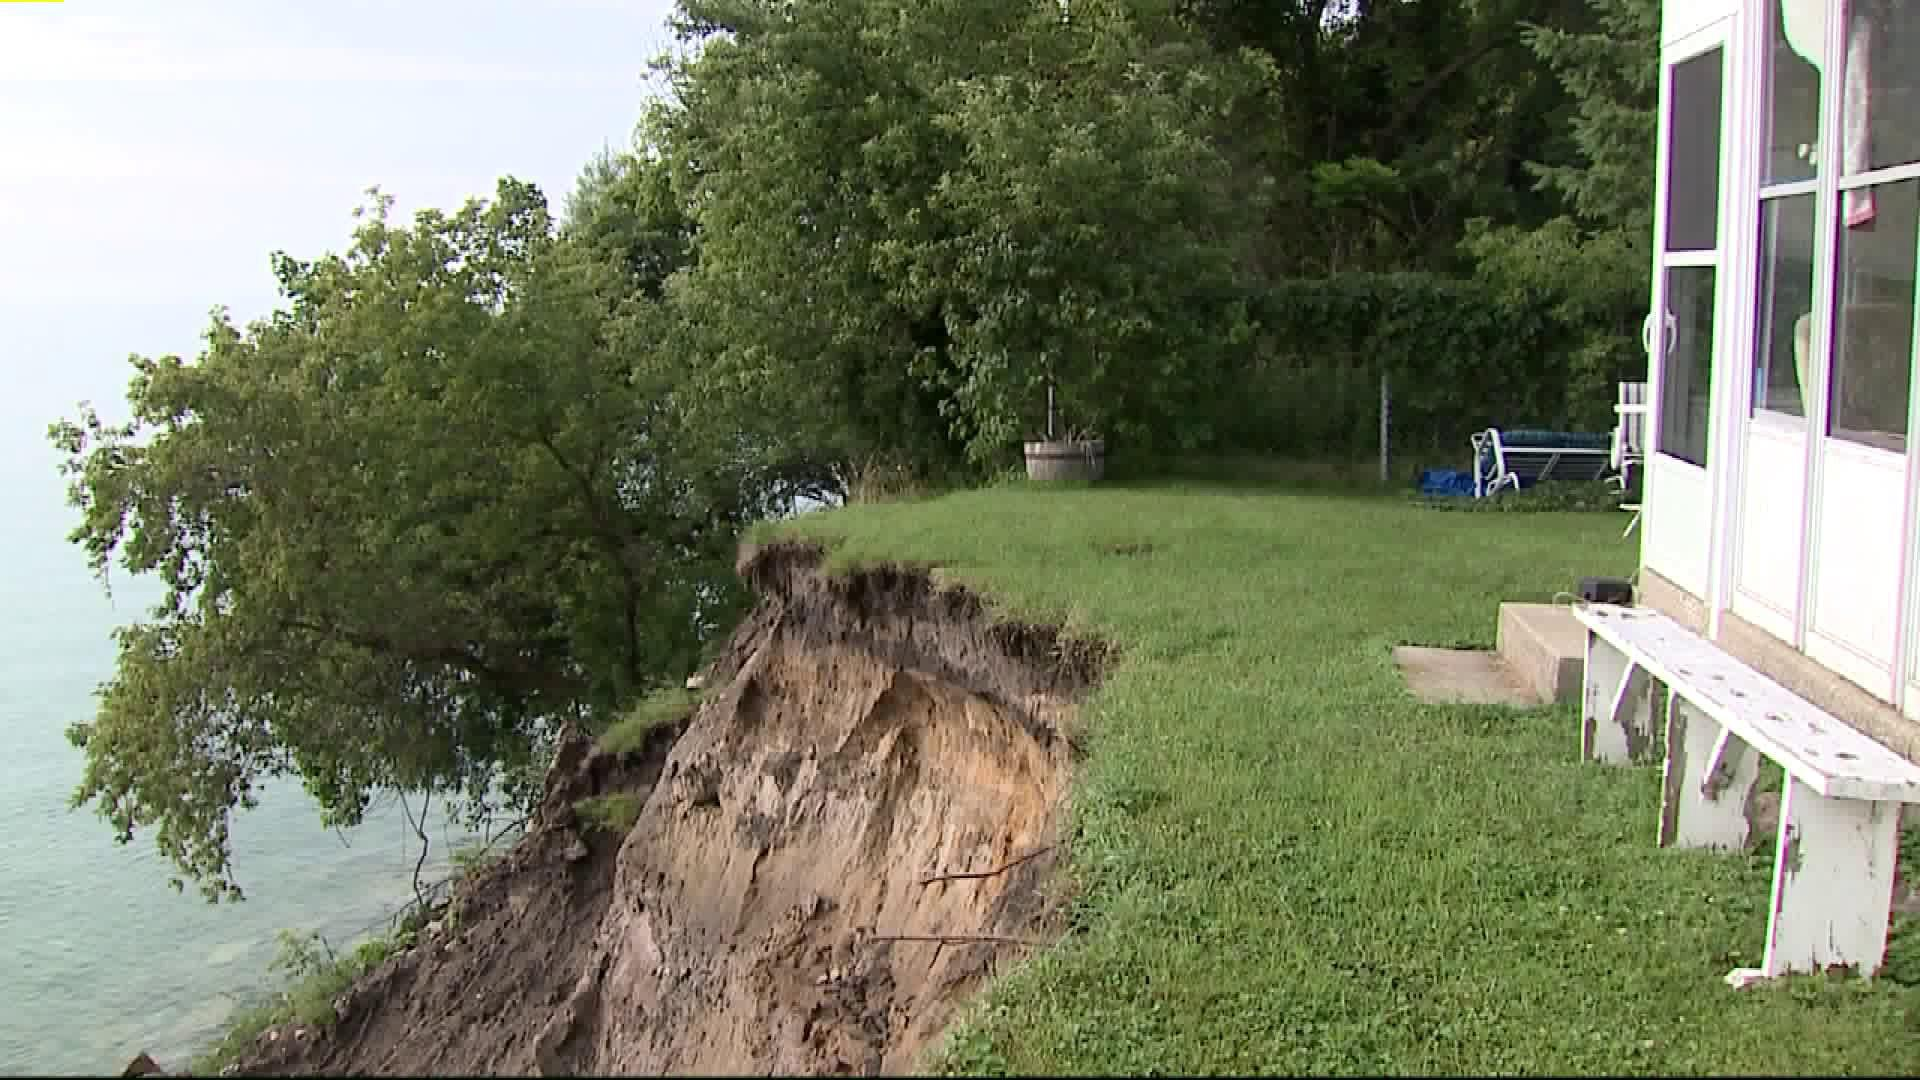 Residents Nervous as Lake Michigan Bluff Erosion Moves Closer to Homes